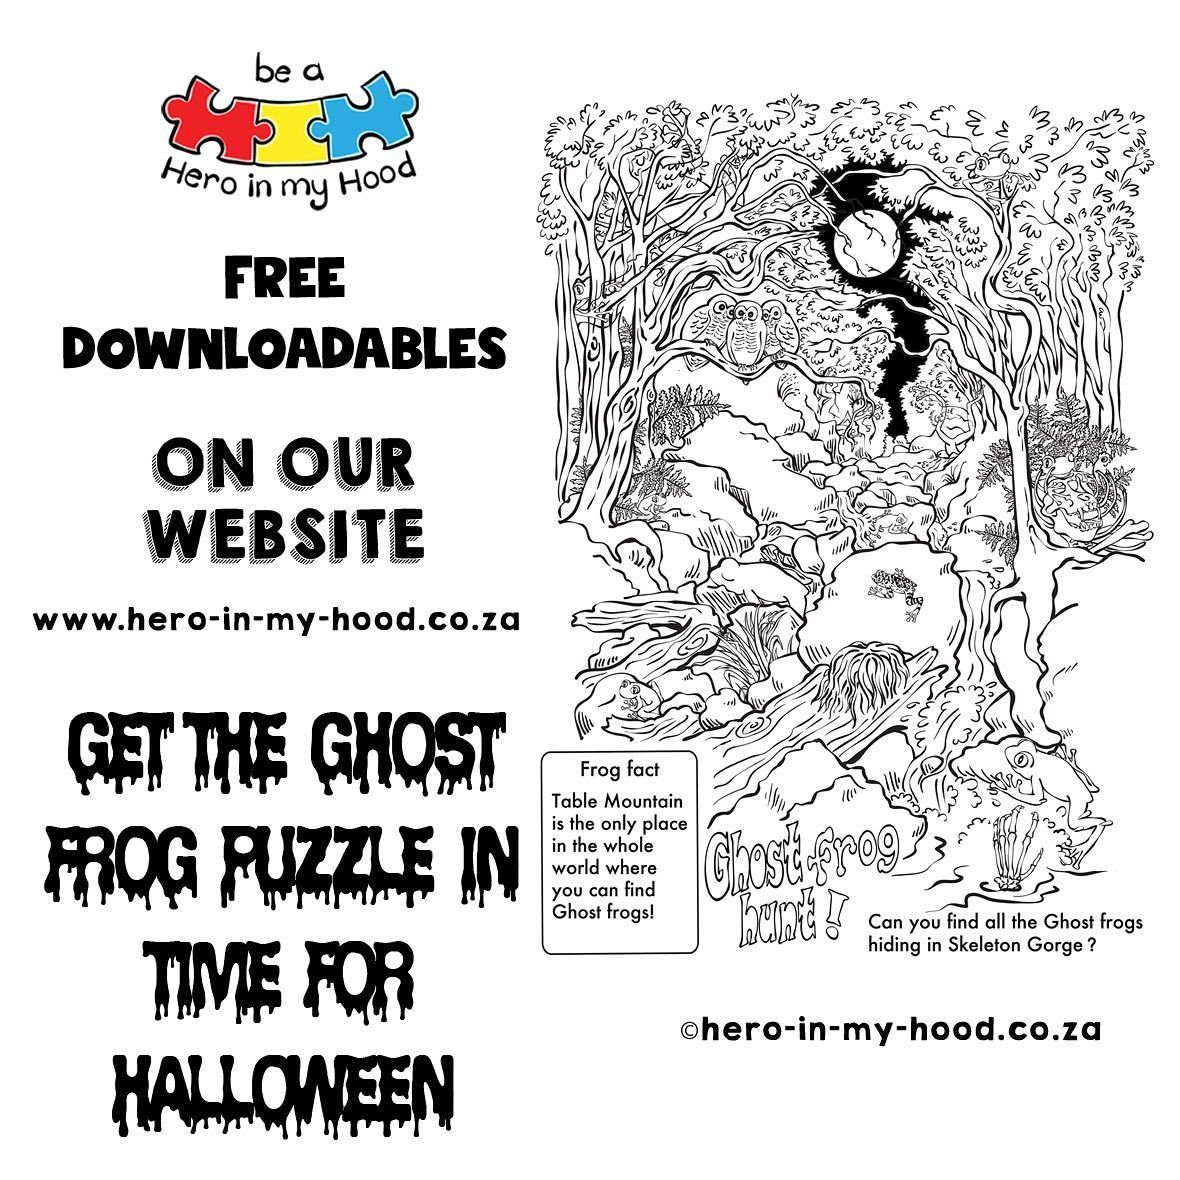 Table Mountain On Halloween 2020 free Halloween Handout on our site, we will announce how many